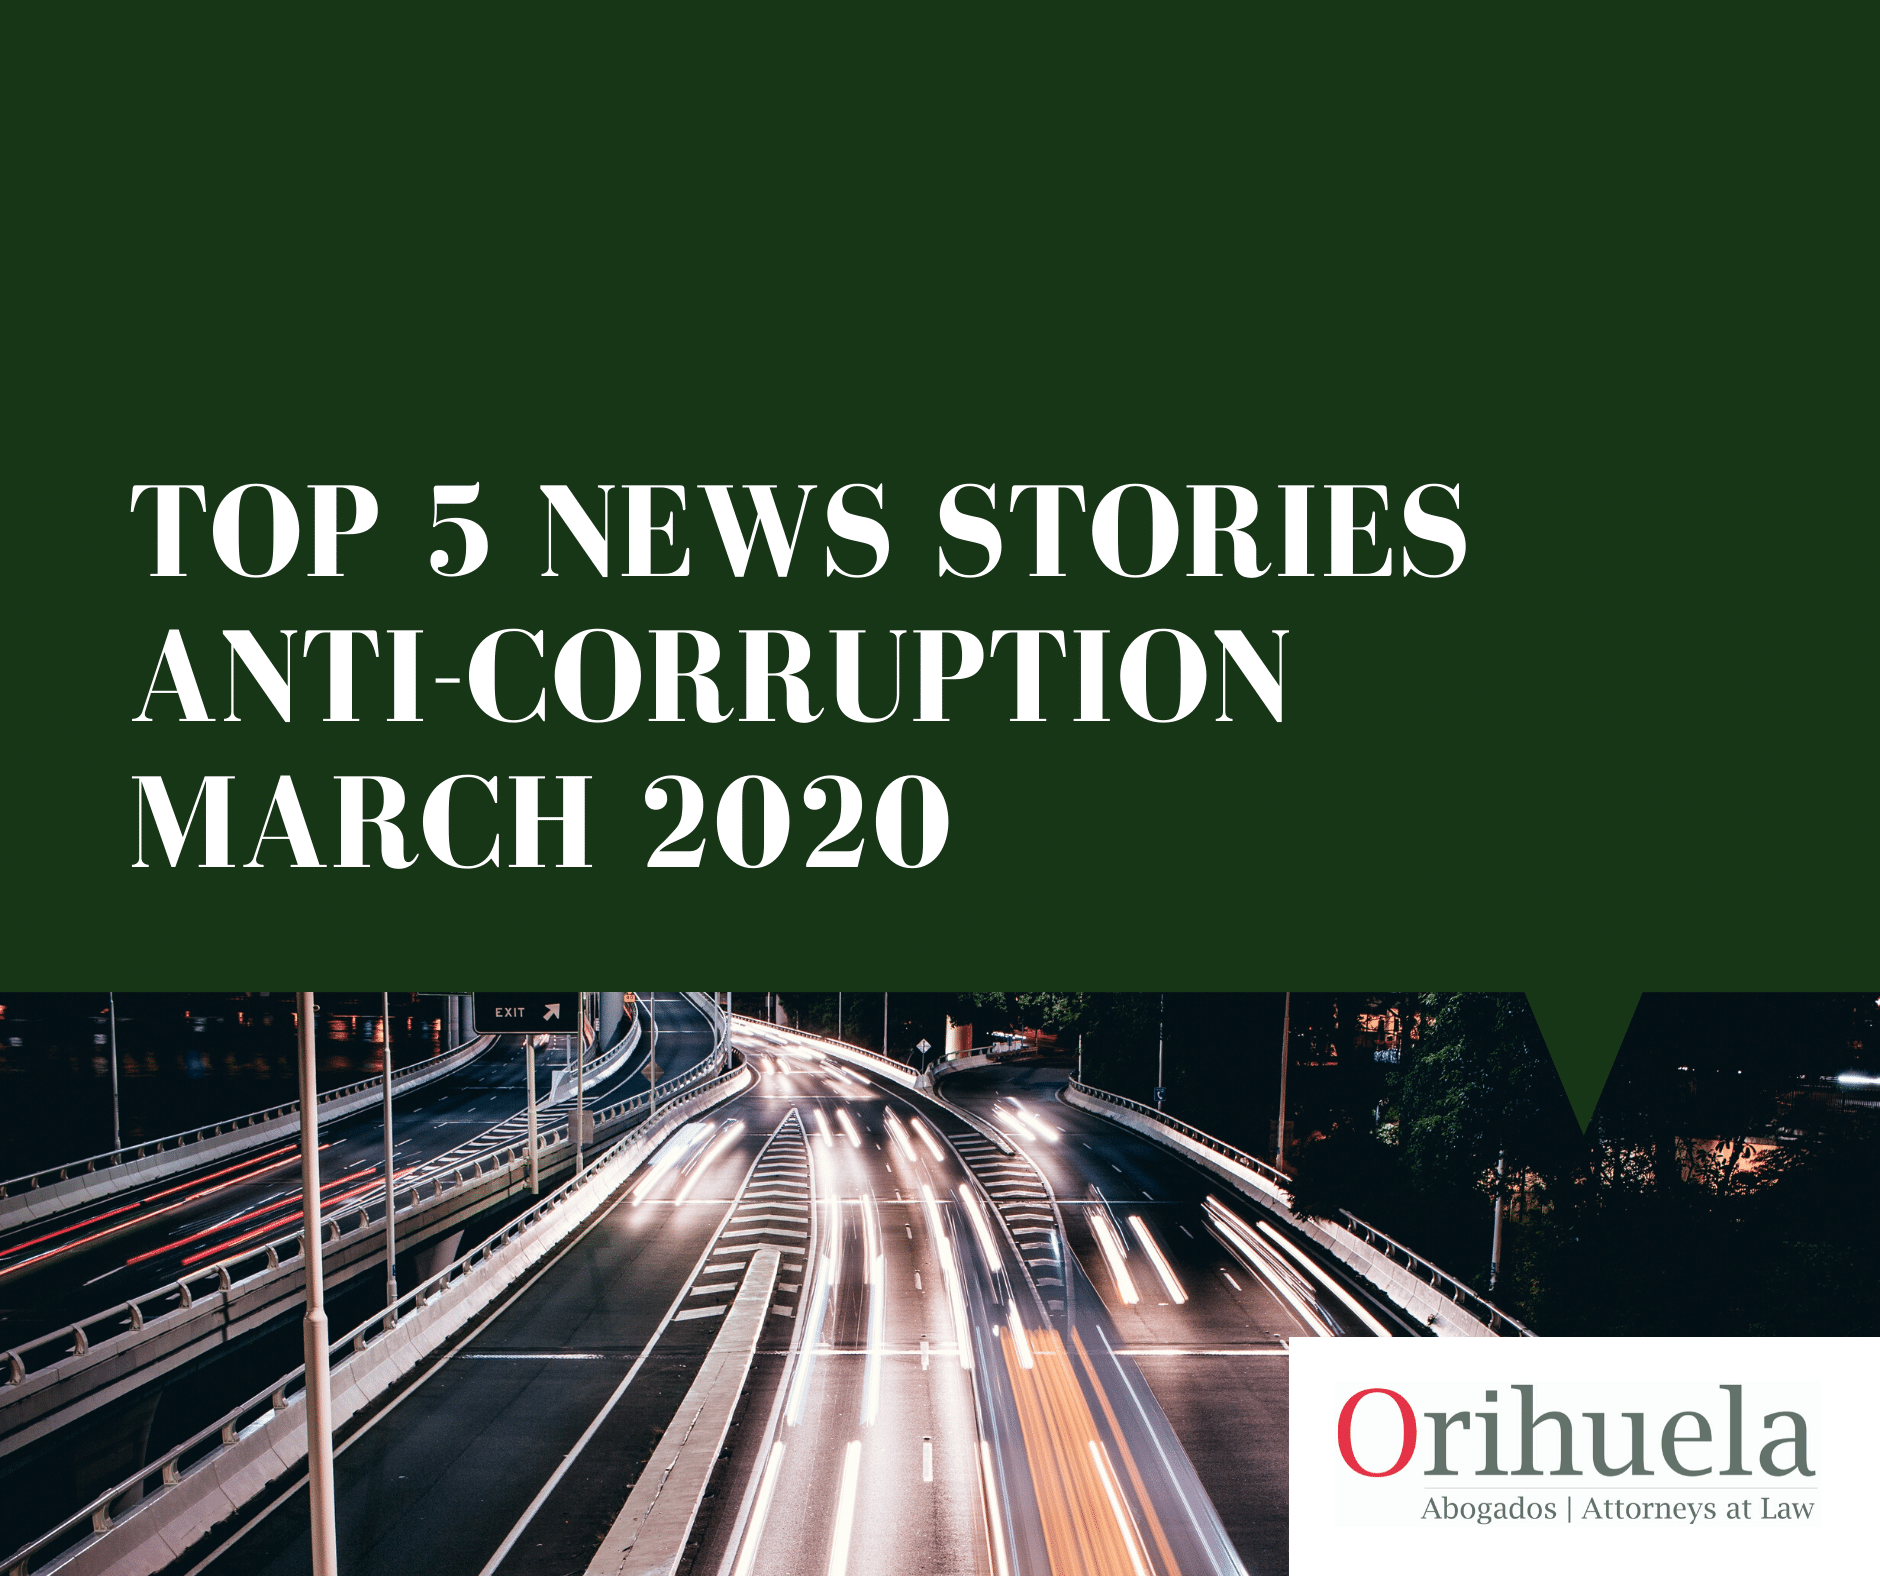 Our top 5 anti-corruption news stories – March 2020